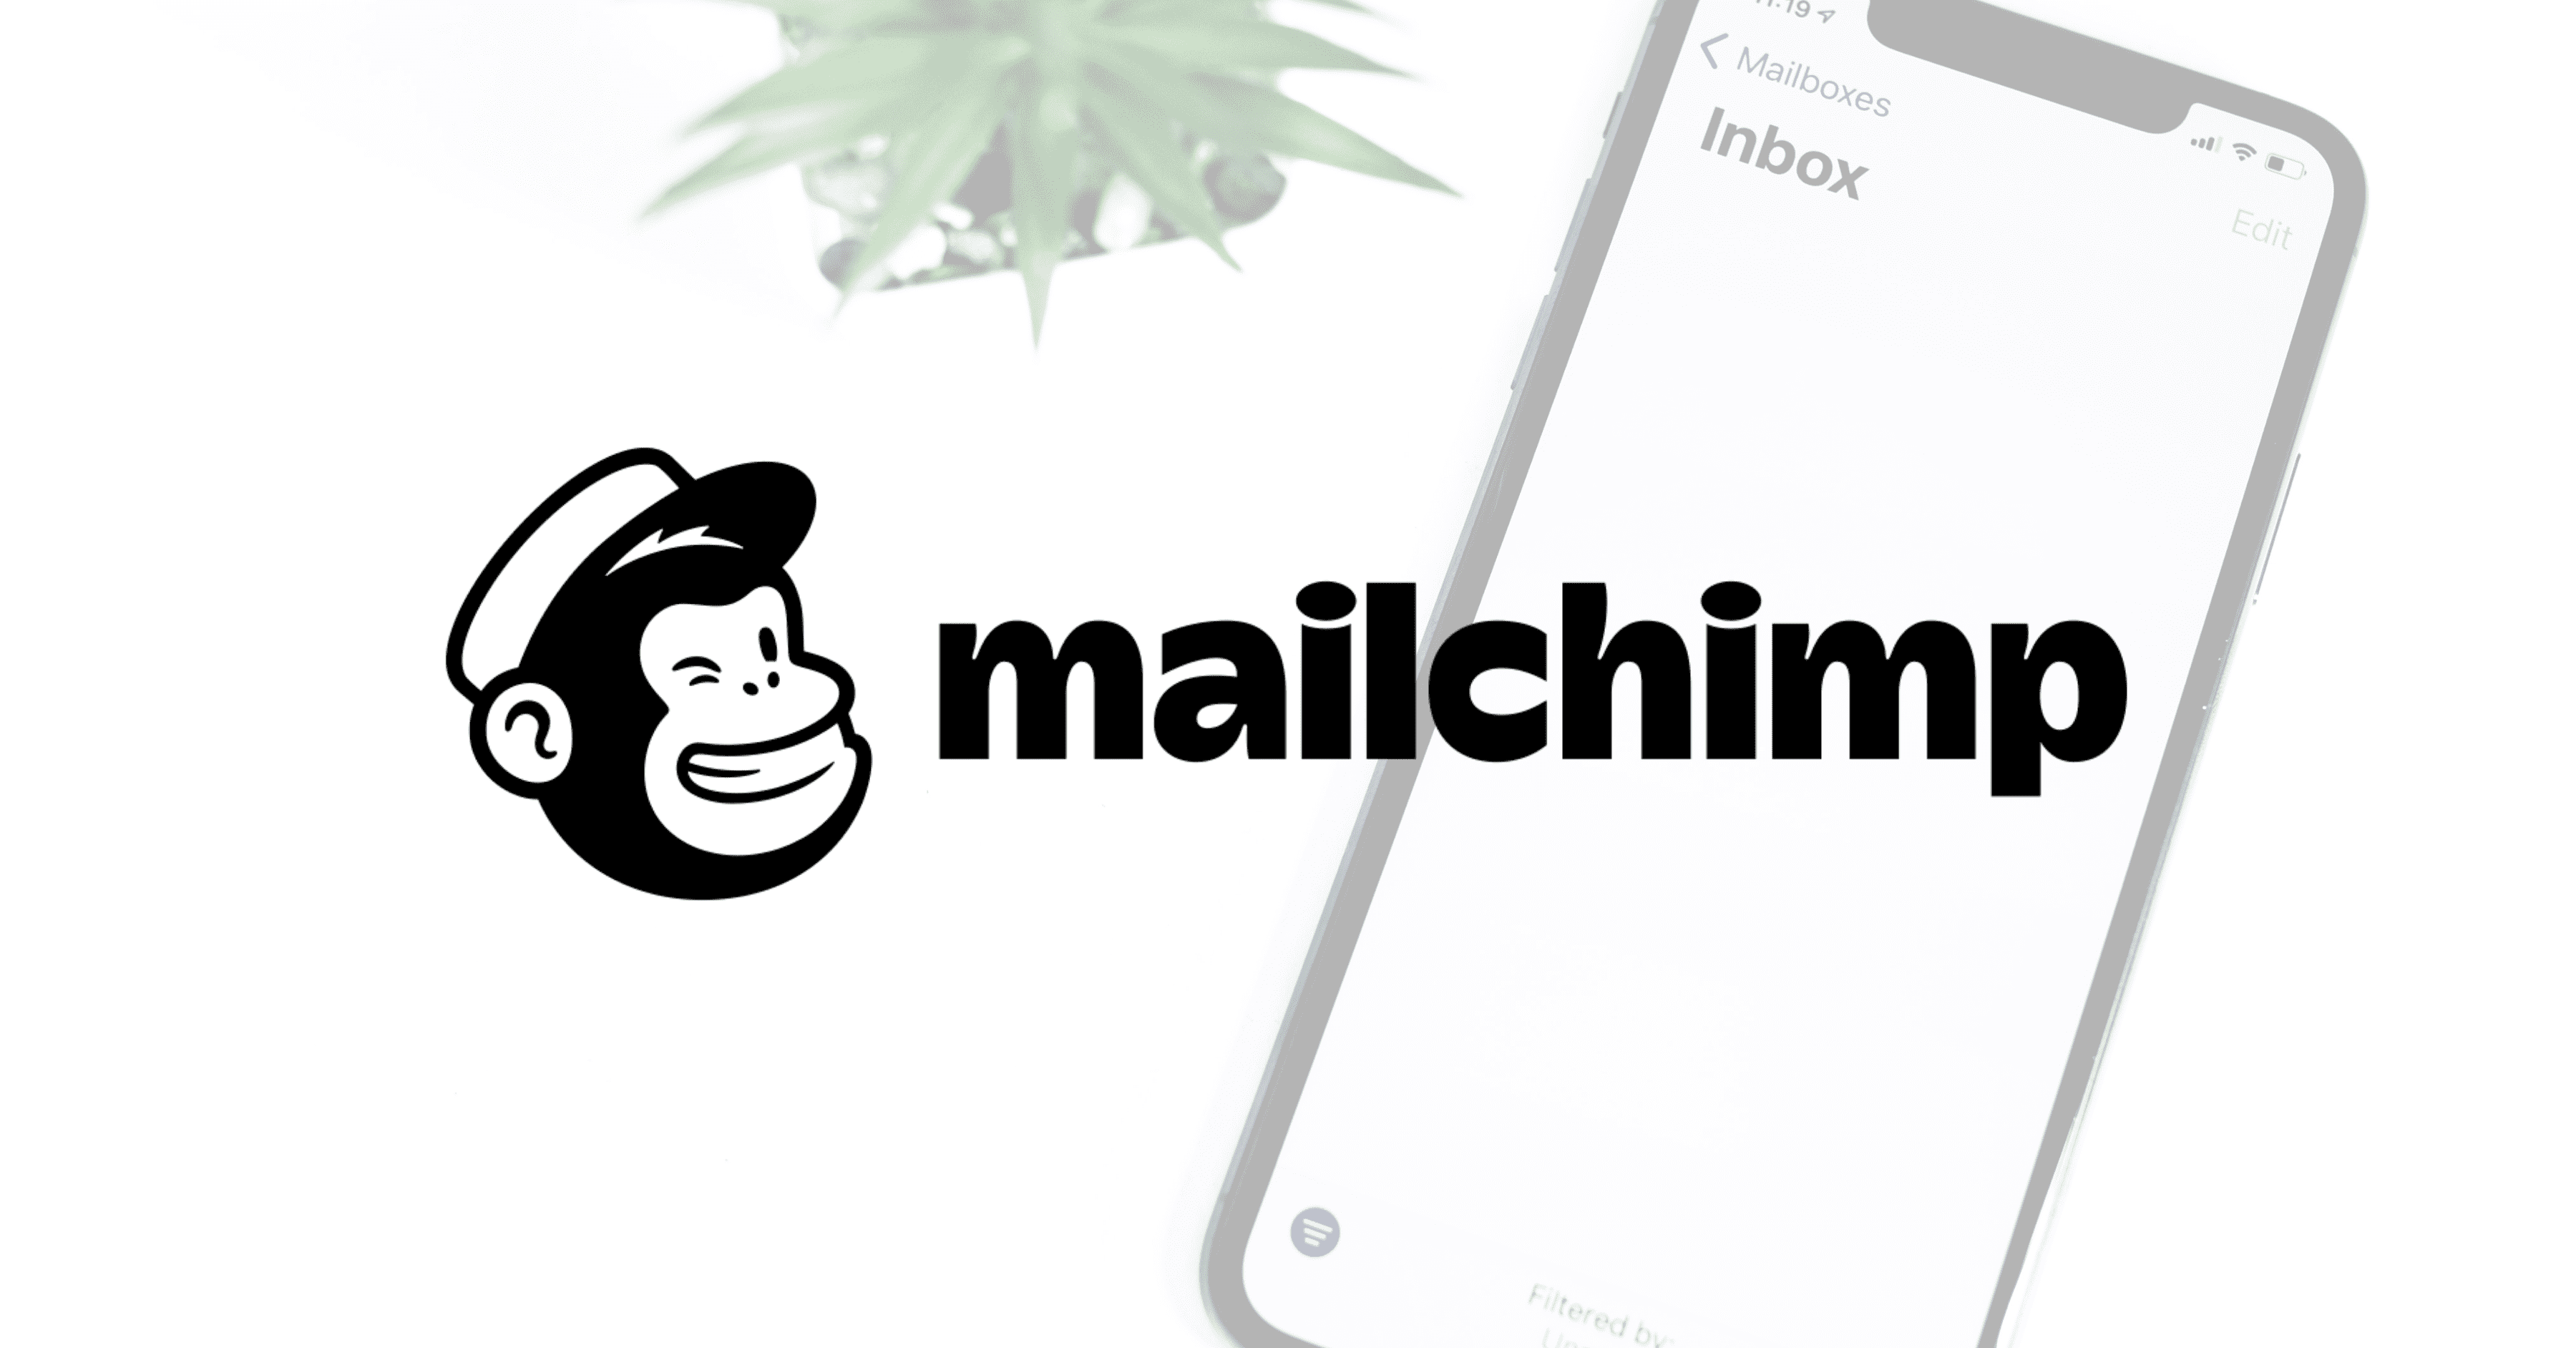 Mailchimp Email Marketing: A Look At The Tool's Features